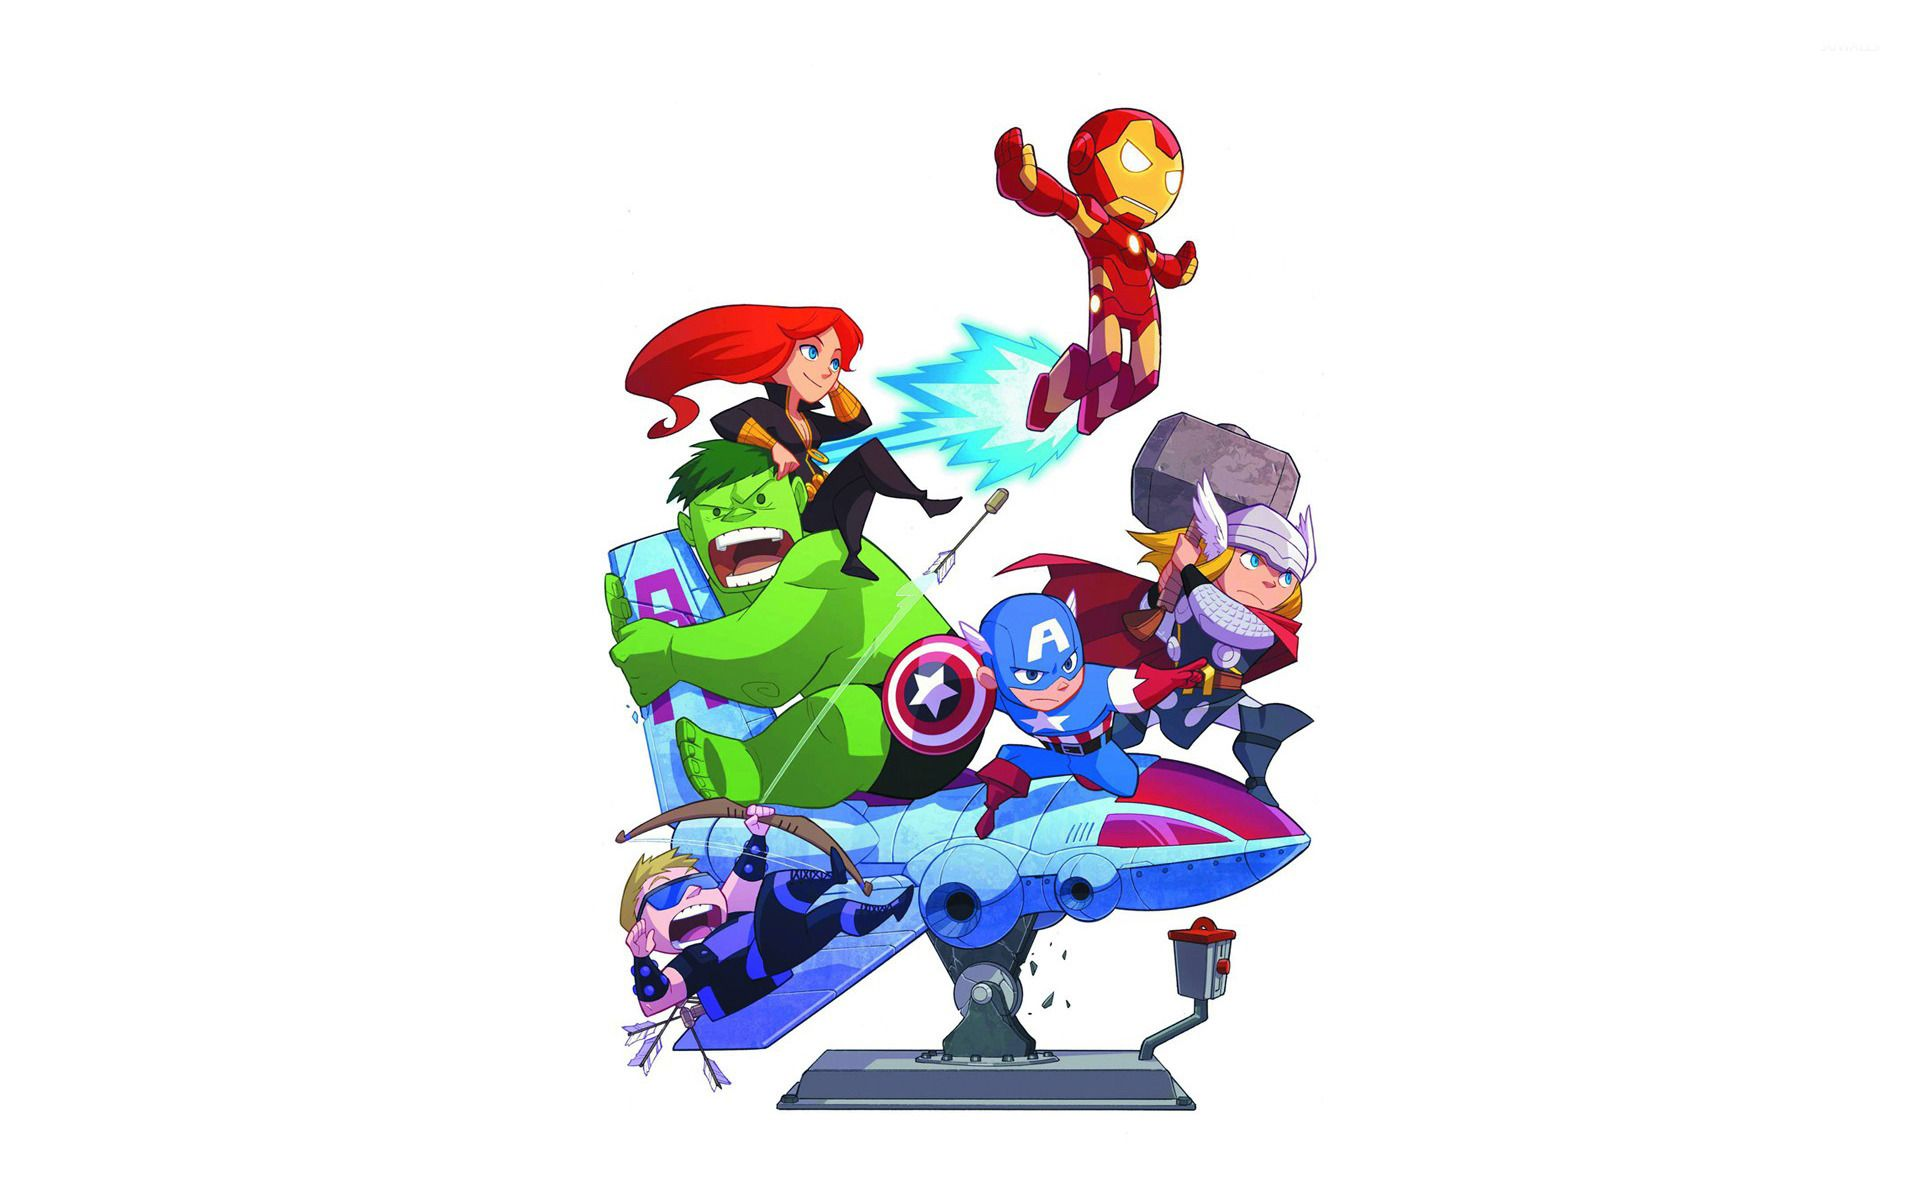 Avengers Cartoon Wallpapers Top Free Avengers Cartoon Backgrounds Wallpaperaccess